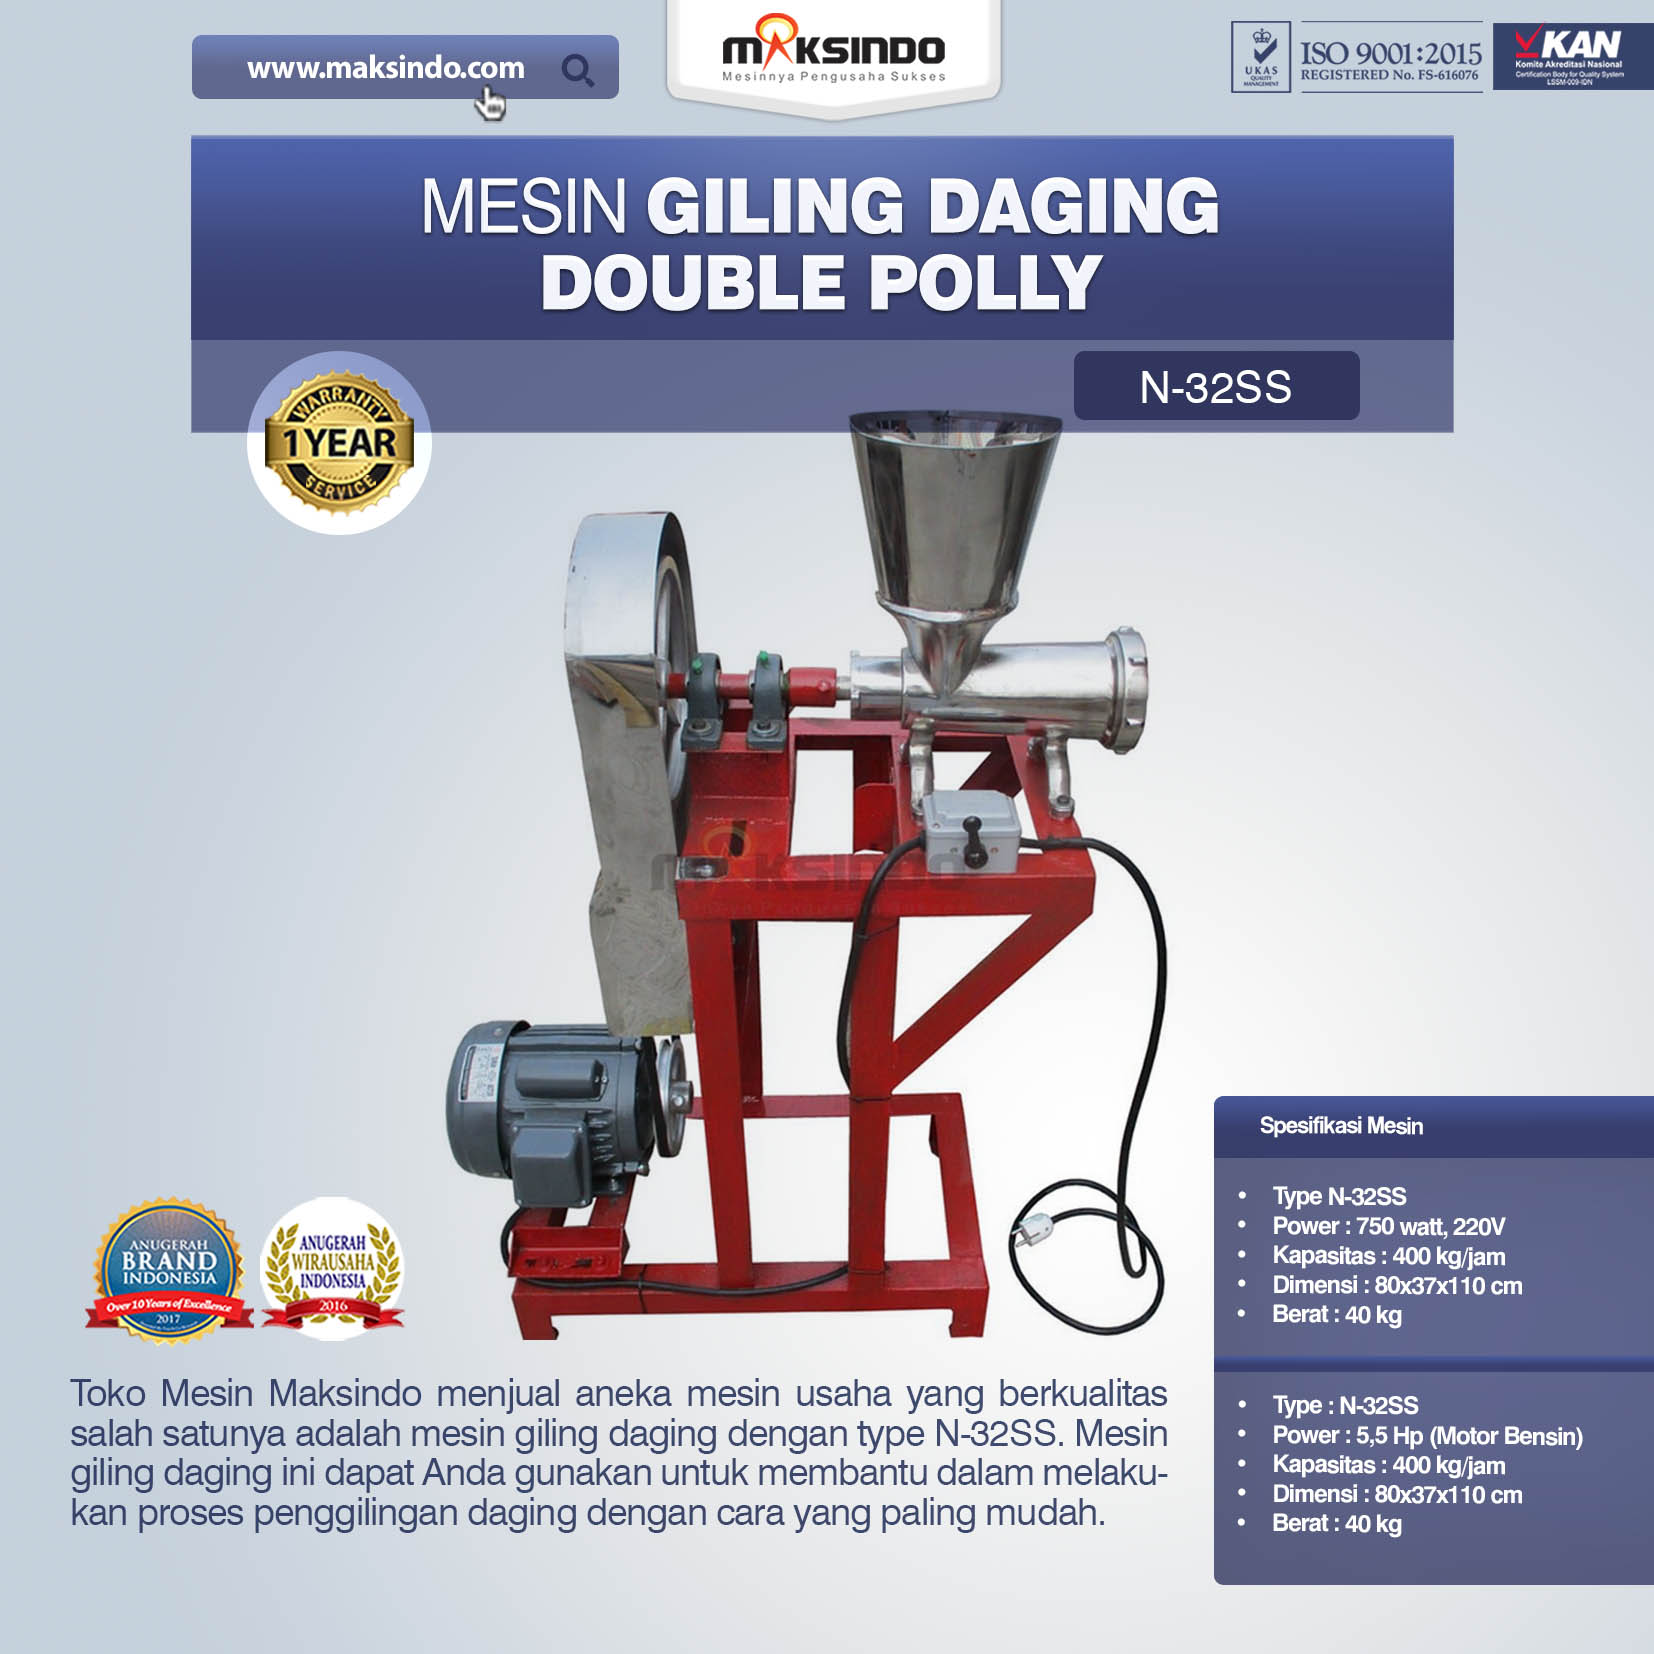 Mesin Giling Daging Double Polly N-32SS